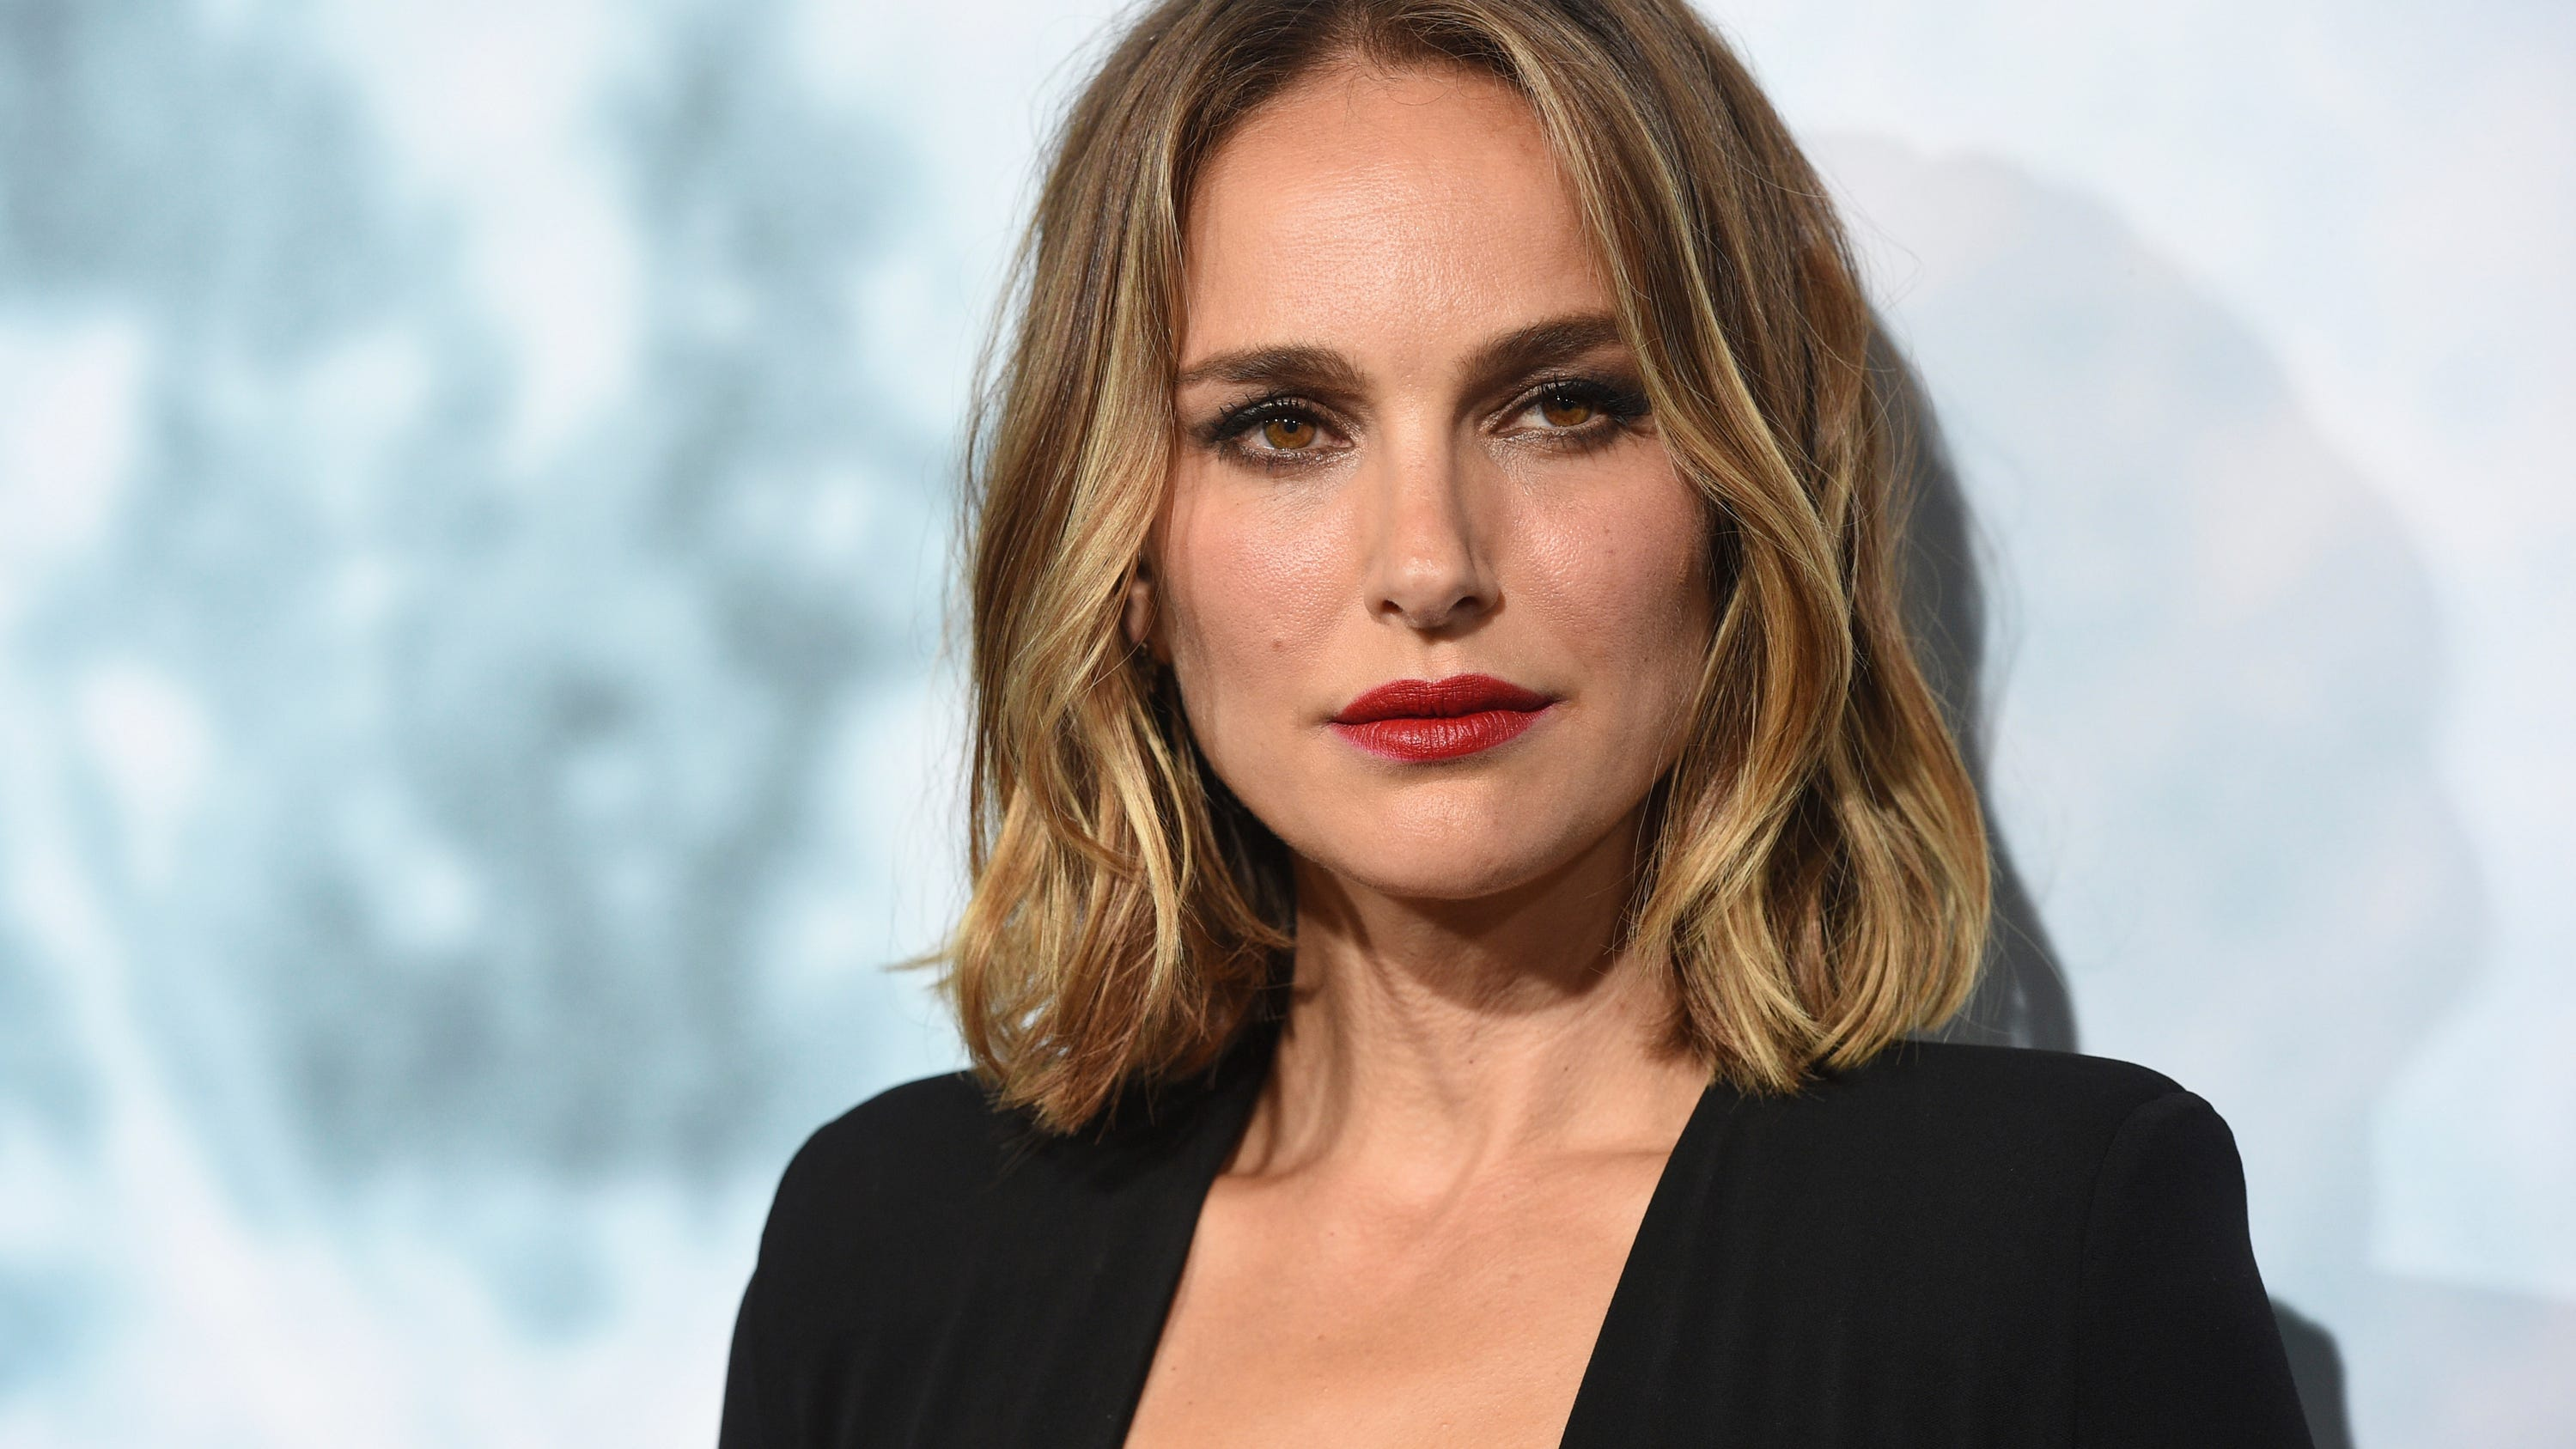 Natalie Portman calls out 'white privilege,' supports defunding police